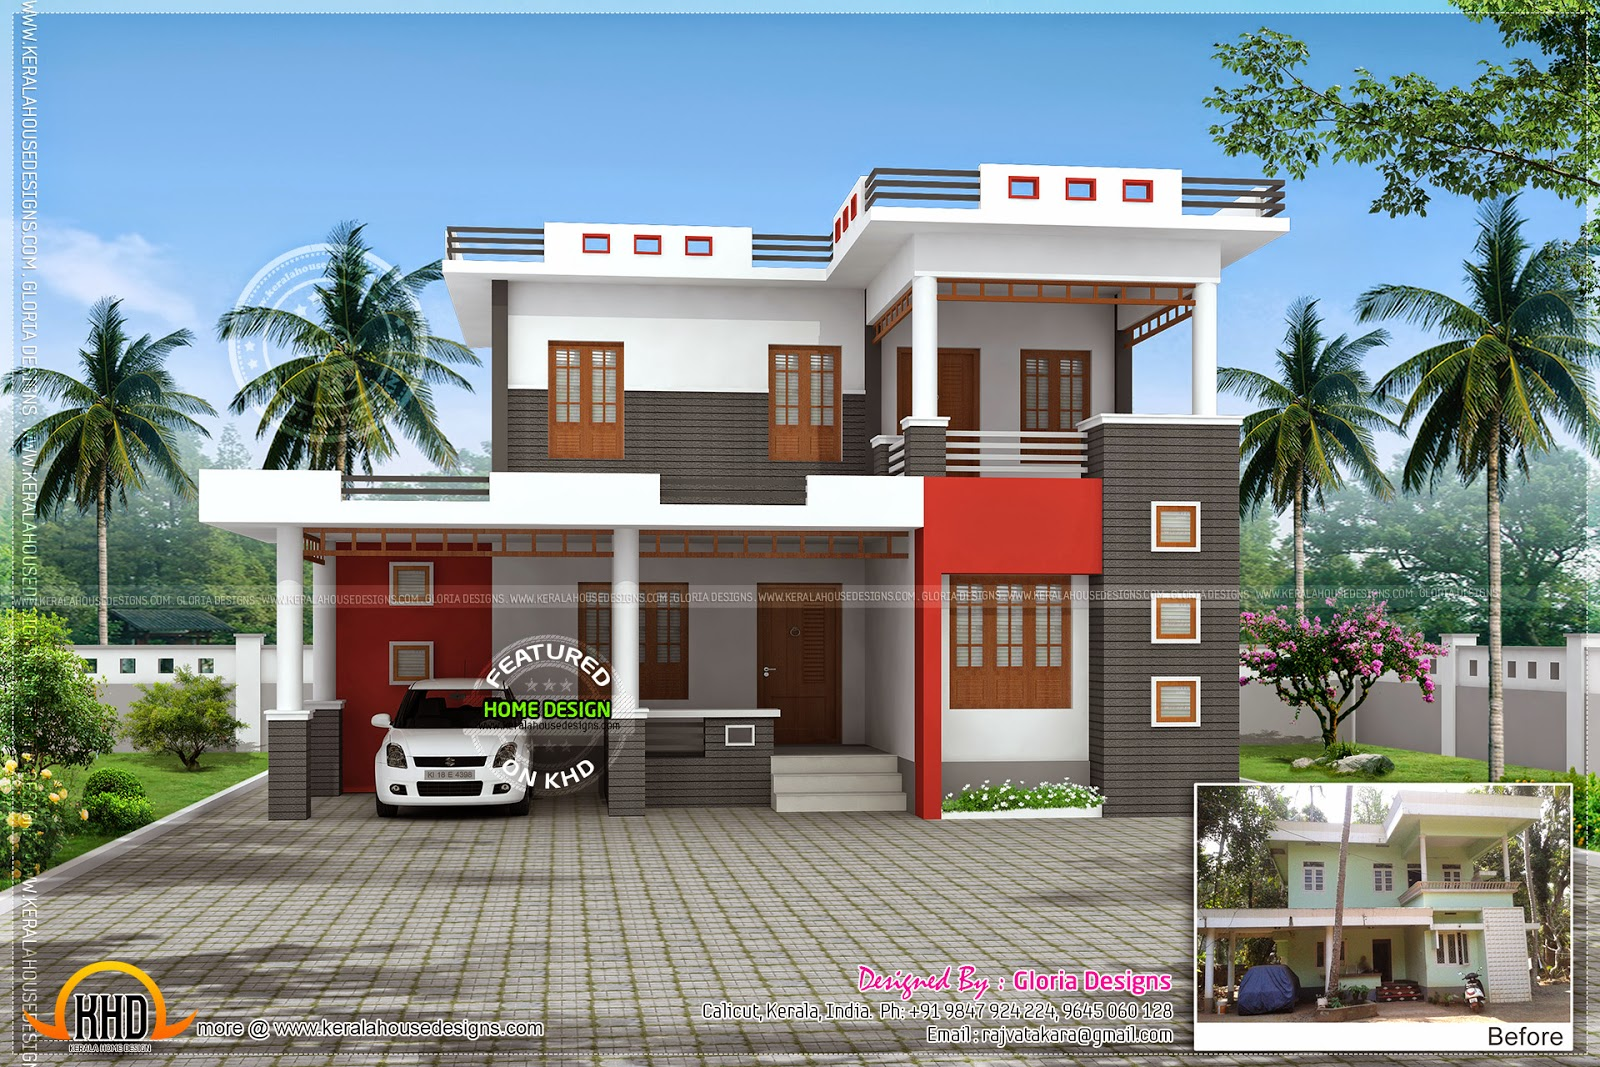 Renovation 3d model for an old house kerala home design for Houses models